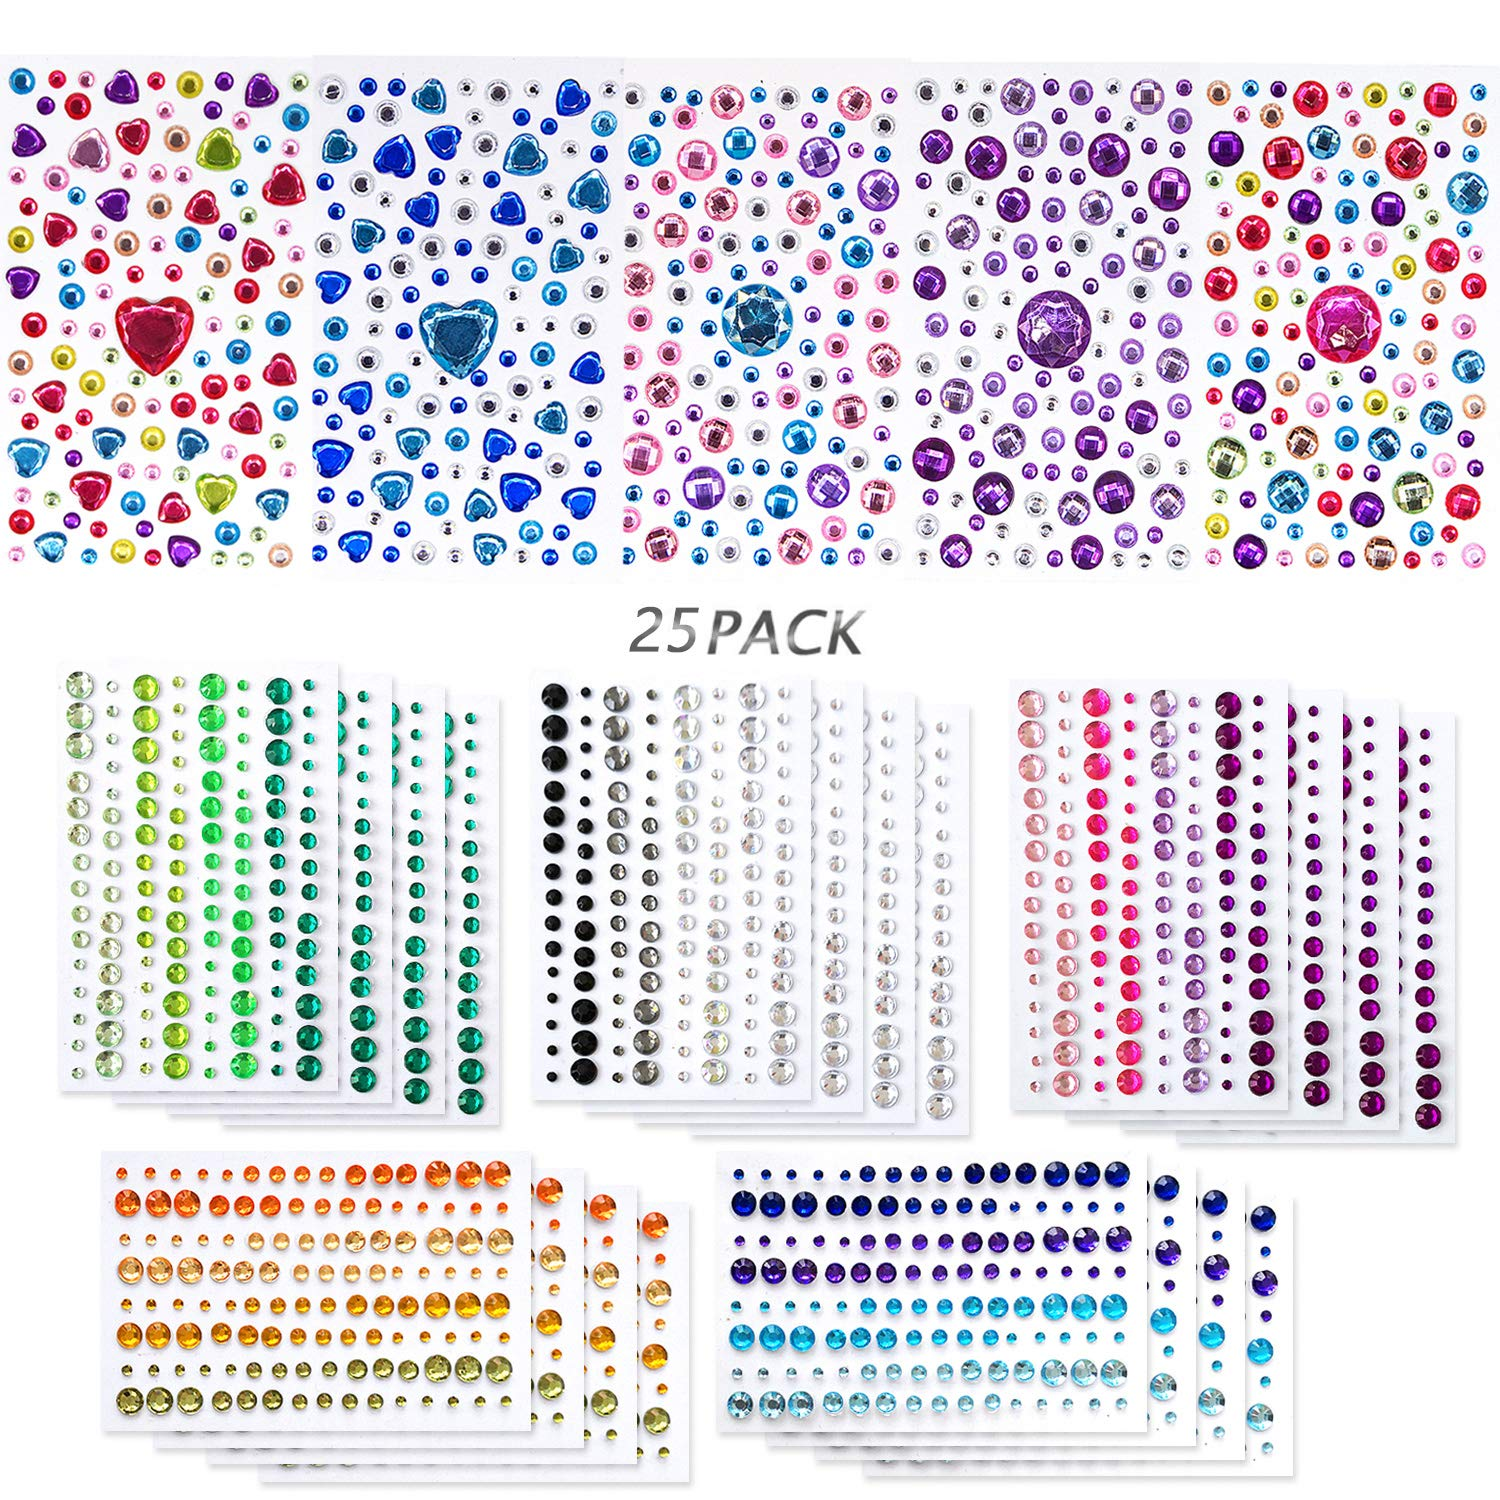 Lanpu 25 Sheets Self-Adhesive Rhinestones Jewels, Rhinestone Stickers DIY Gem Rhinestone Multi Color Gemstone Embellishments Assorted for Makeup, Festival, Crafts & Embellishments More Than 2800PCS